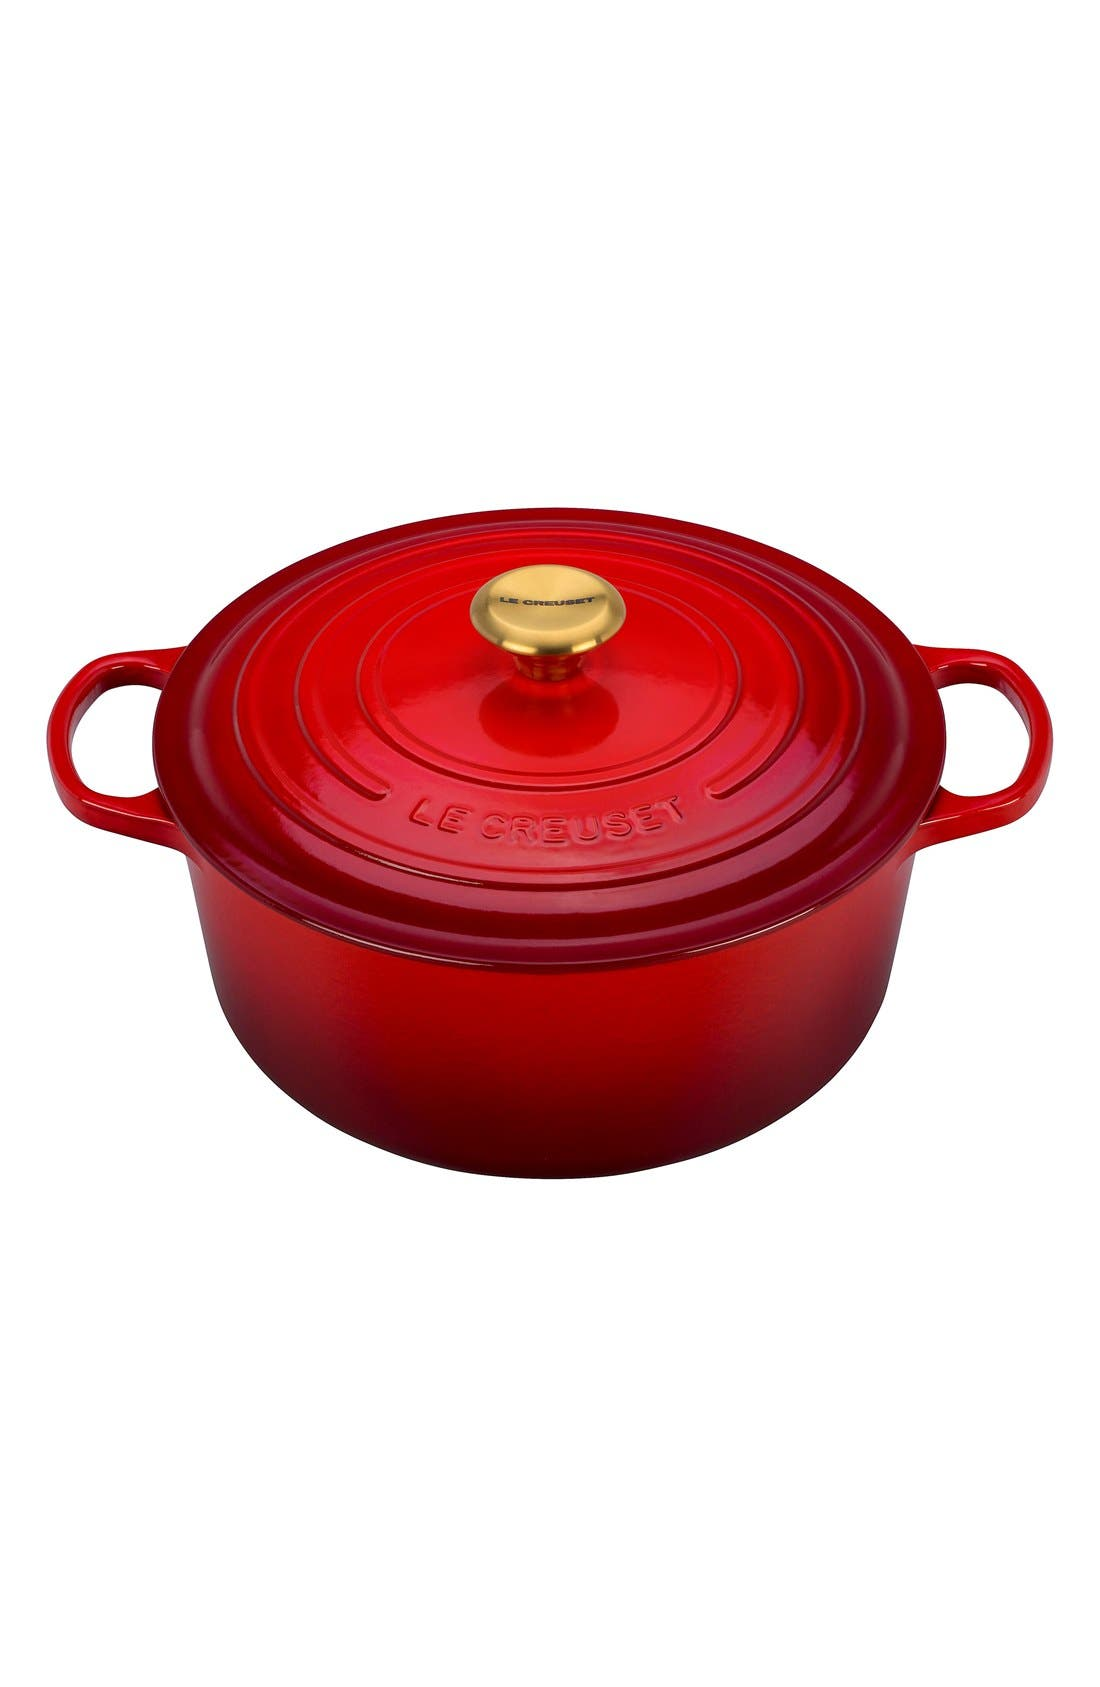 Alternate Image 1 Selected - Le Creuset Gold Knob Collection 7 1/2 Quart Round French/Dutch Oven